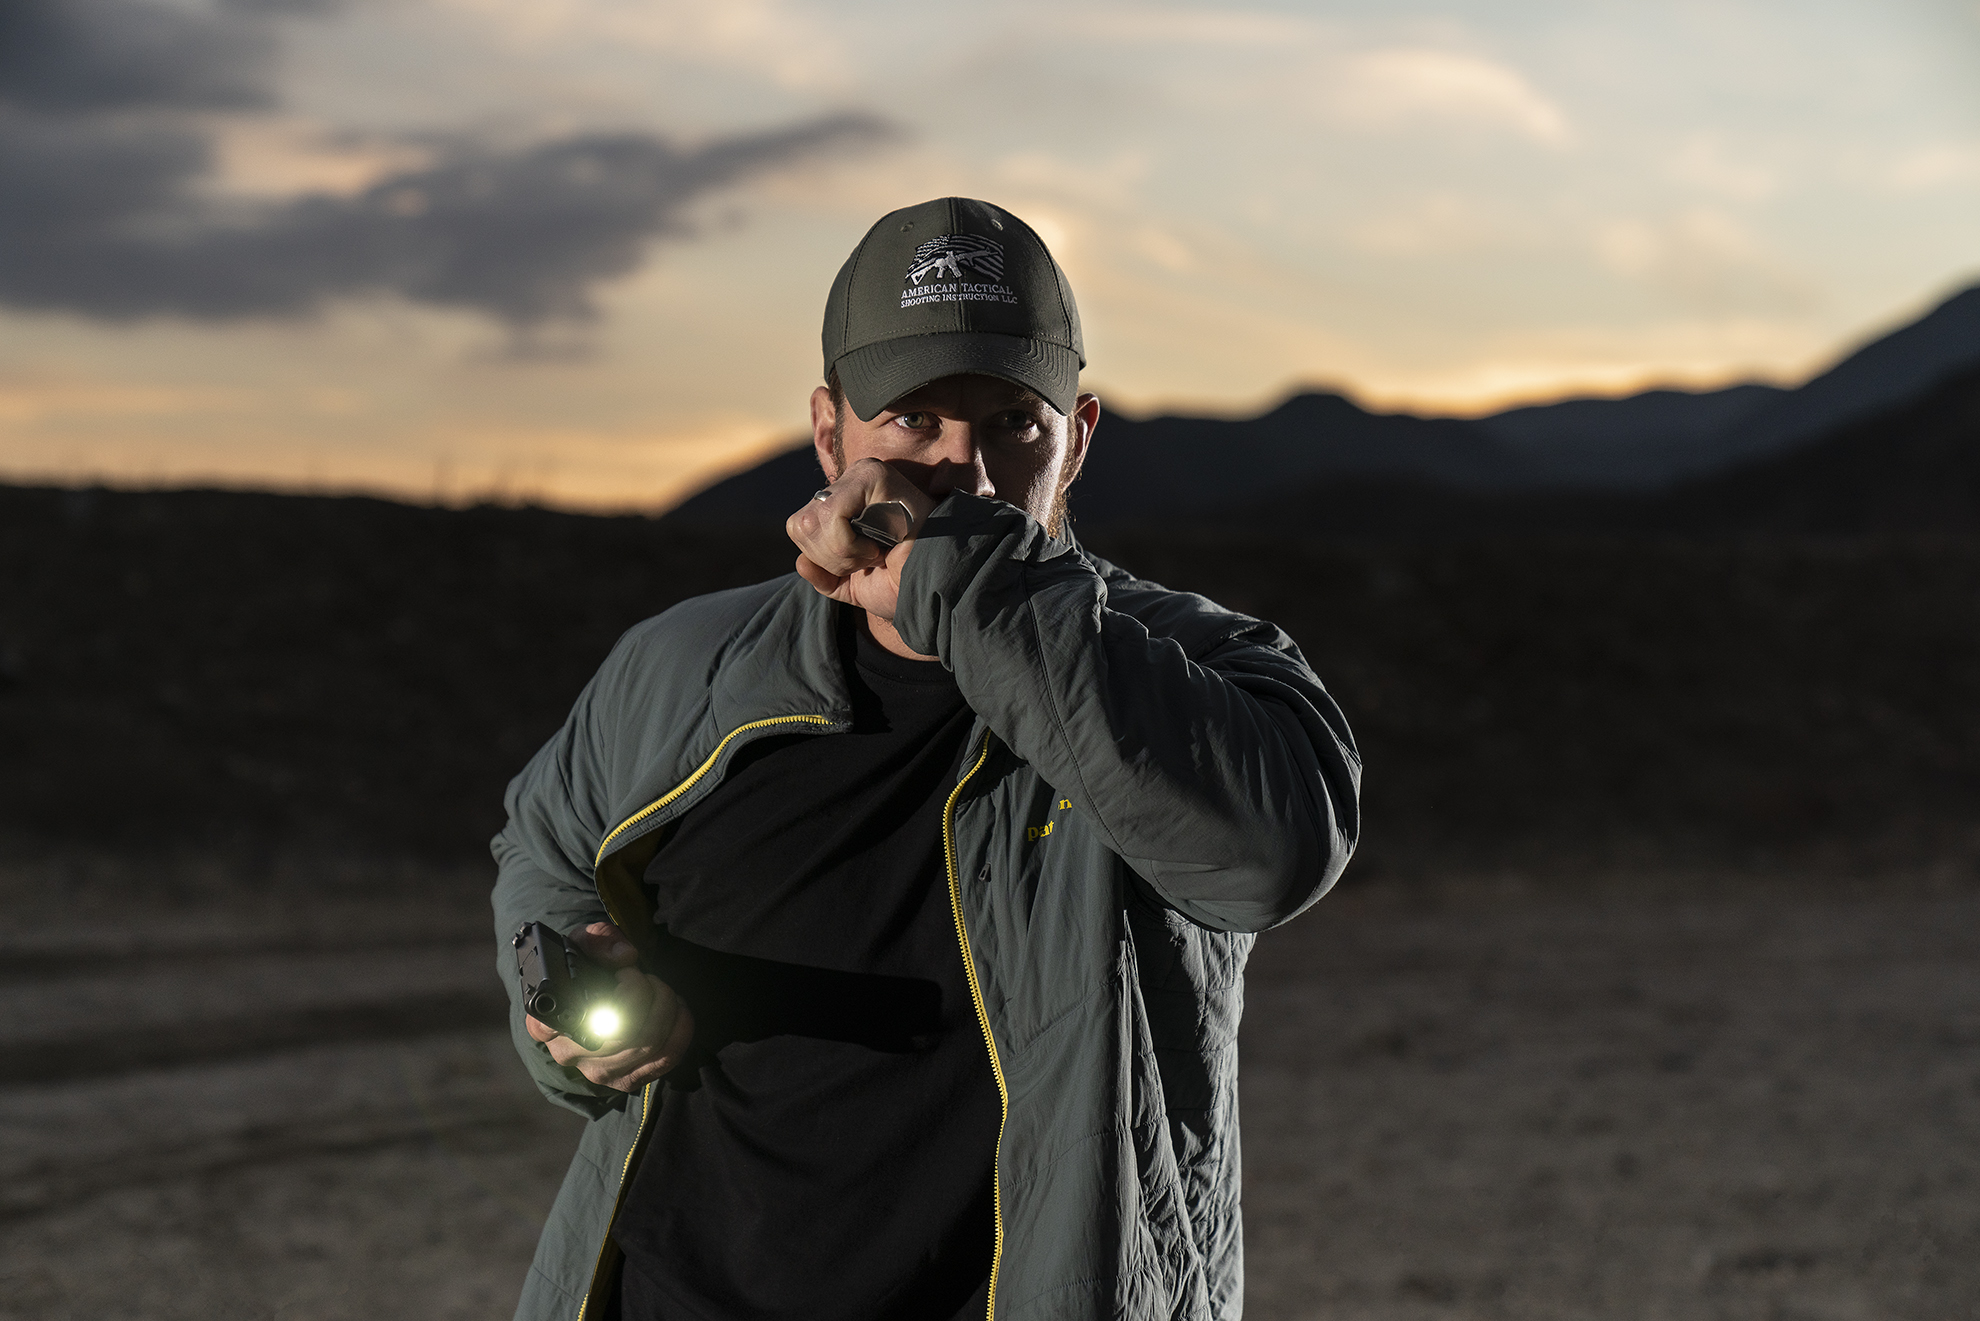 Bill Rapier of Amtac Shooting with SureFire flashlight